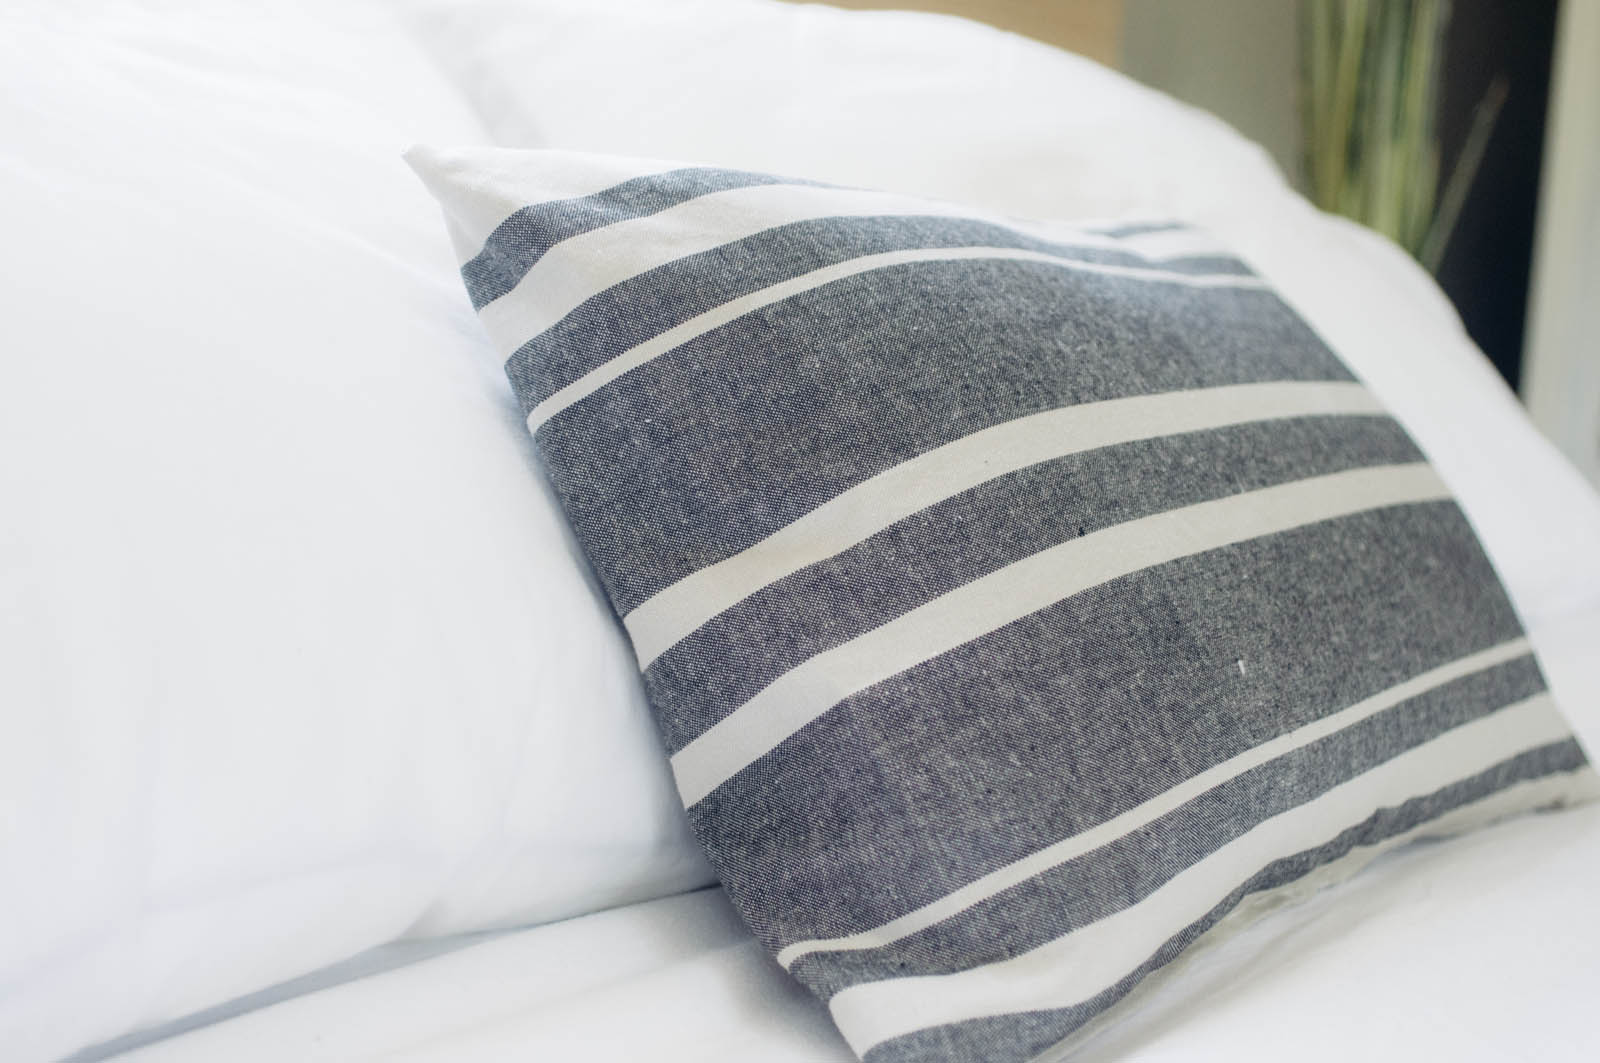 Making Pillow Covers With Piping